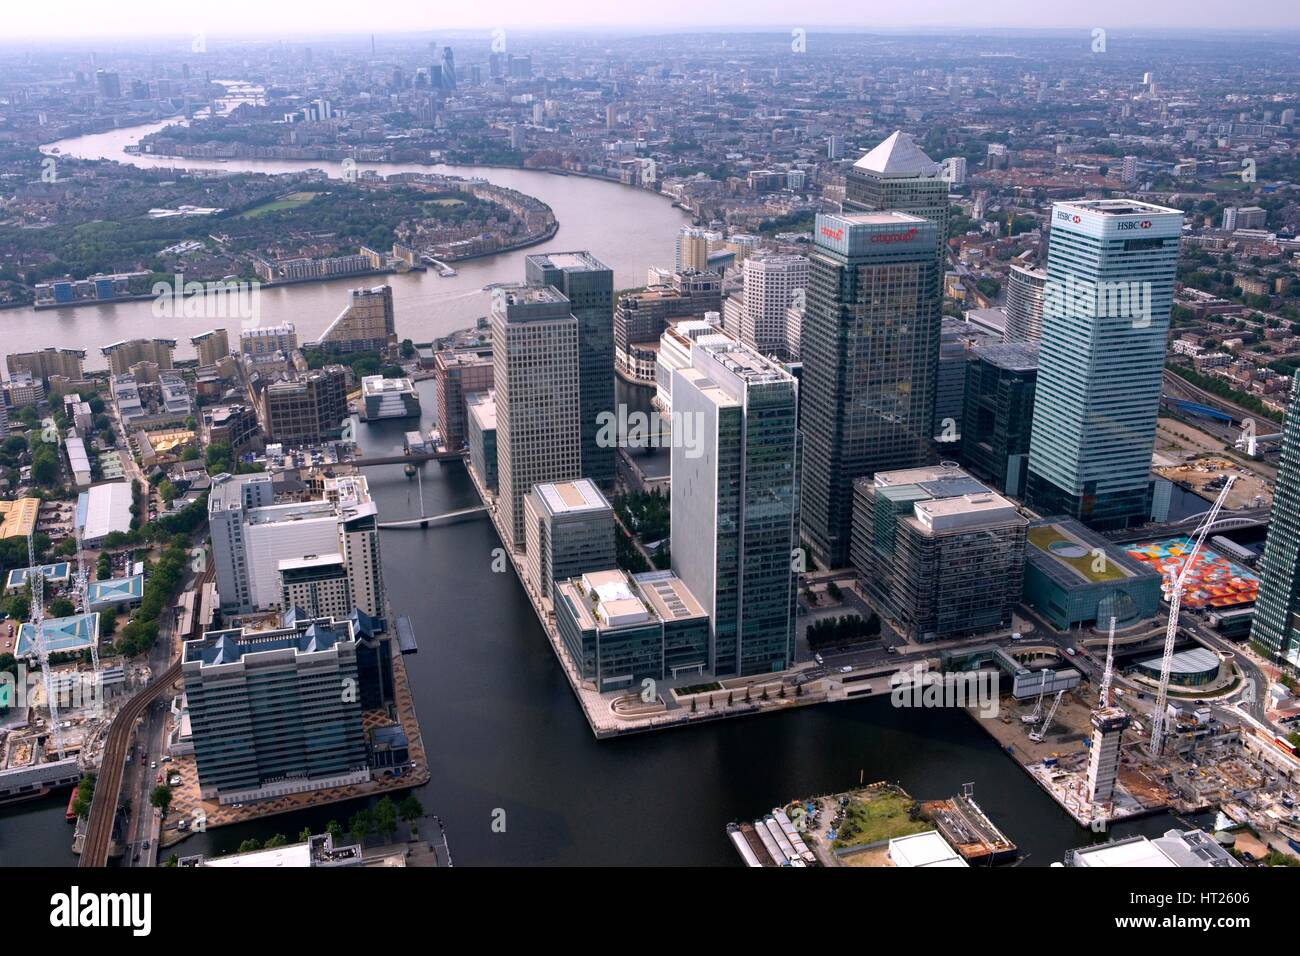 Canary Wharf, Docklands, London, 2006.  Artist: Historic England Staff Photographer. - Stock Image